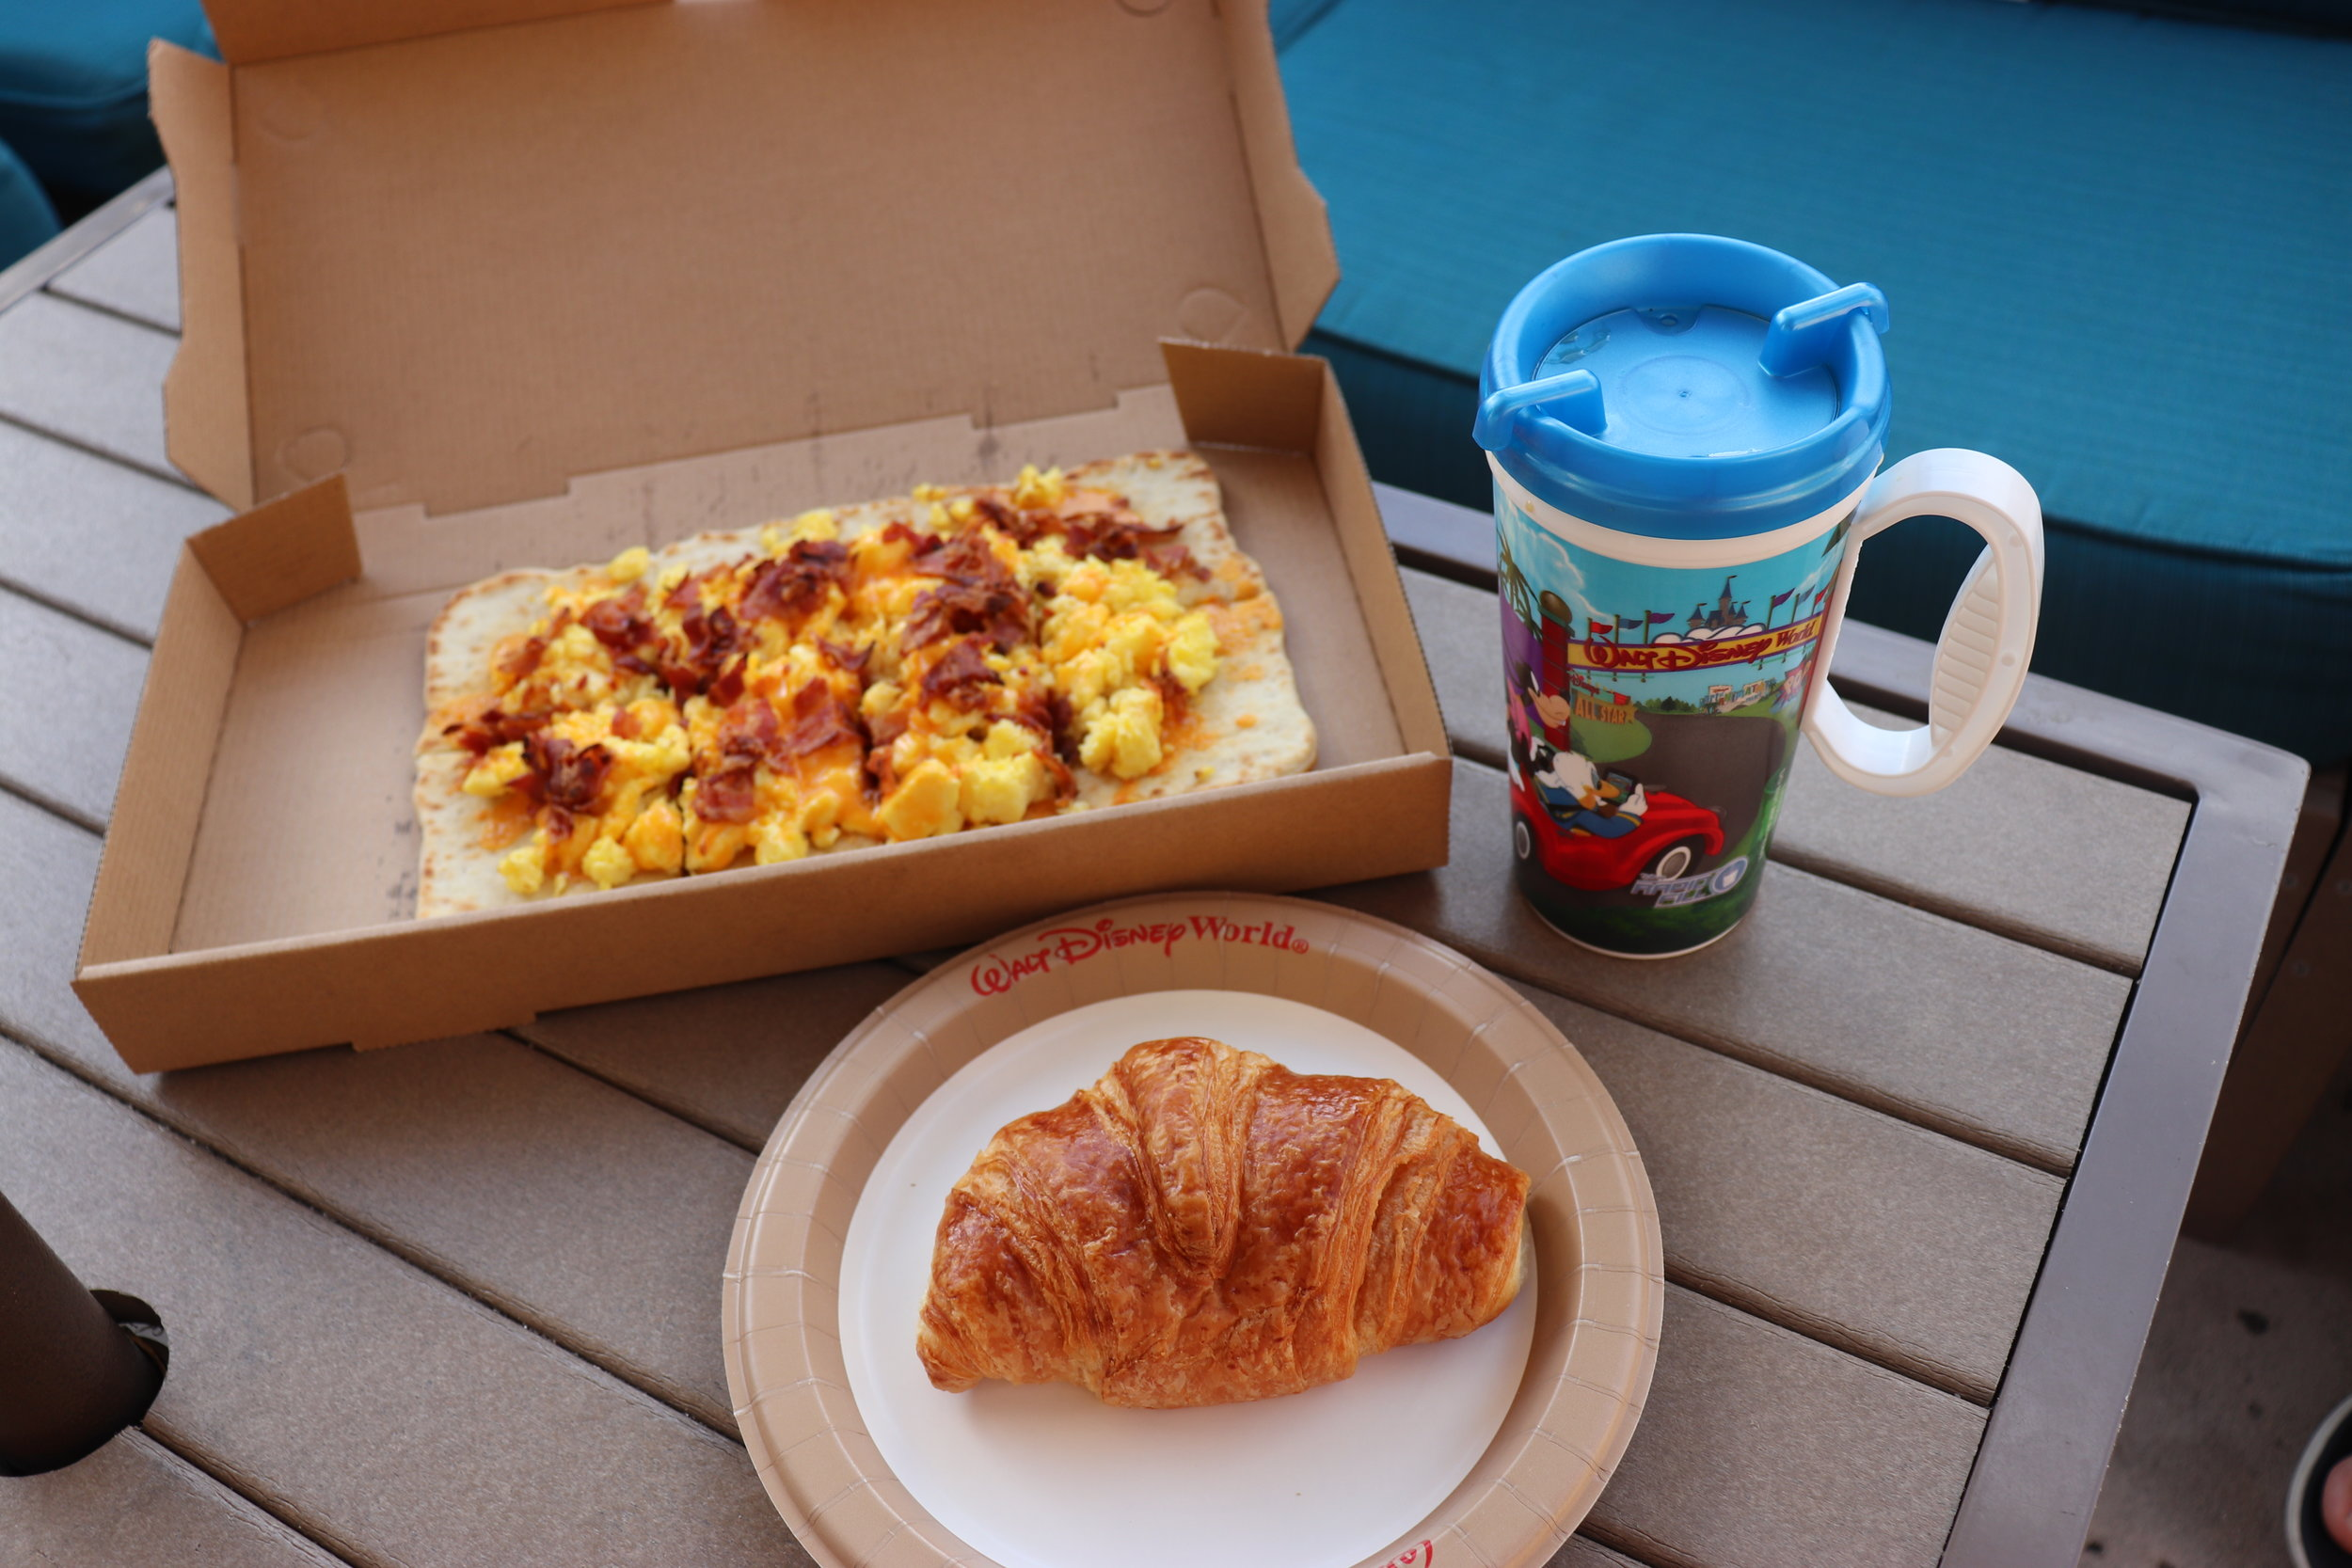 Breakfast flatbread, croissant and refillable coffee.